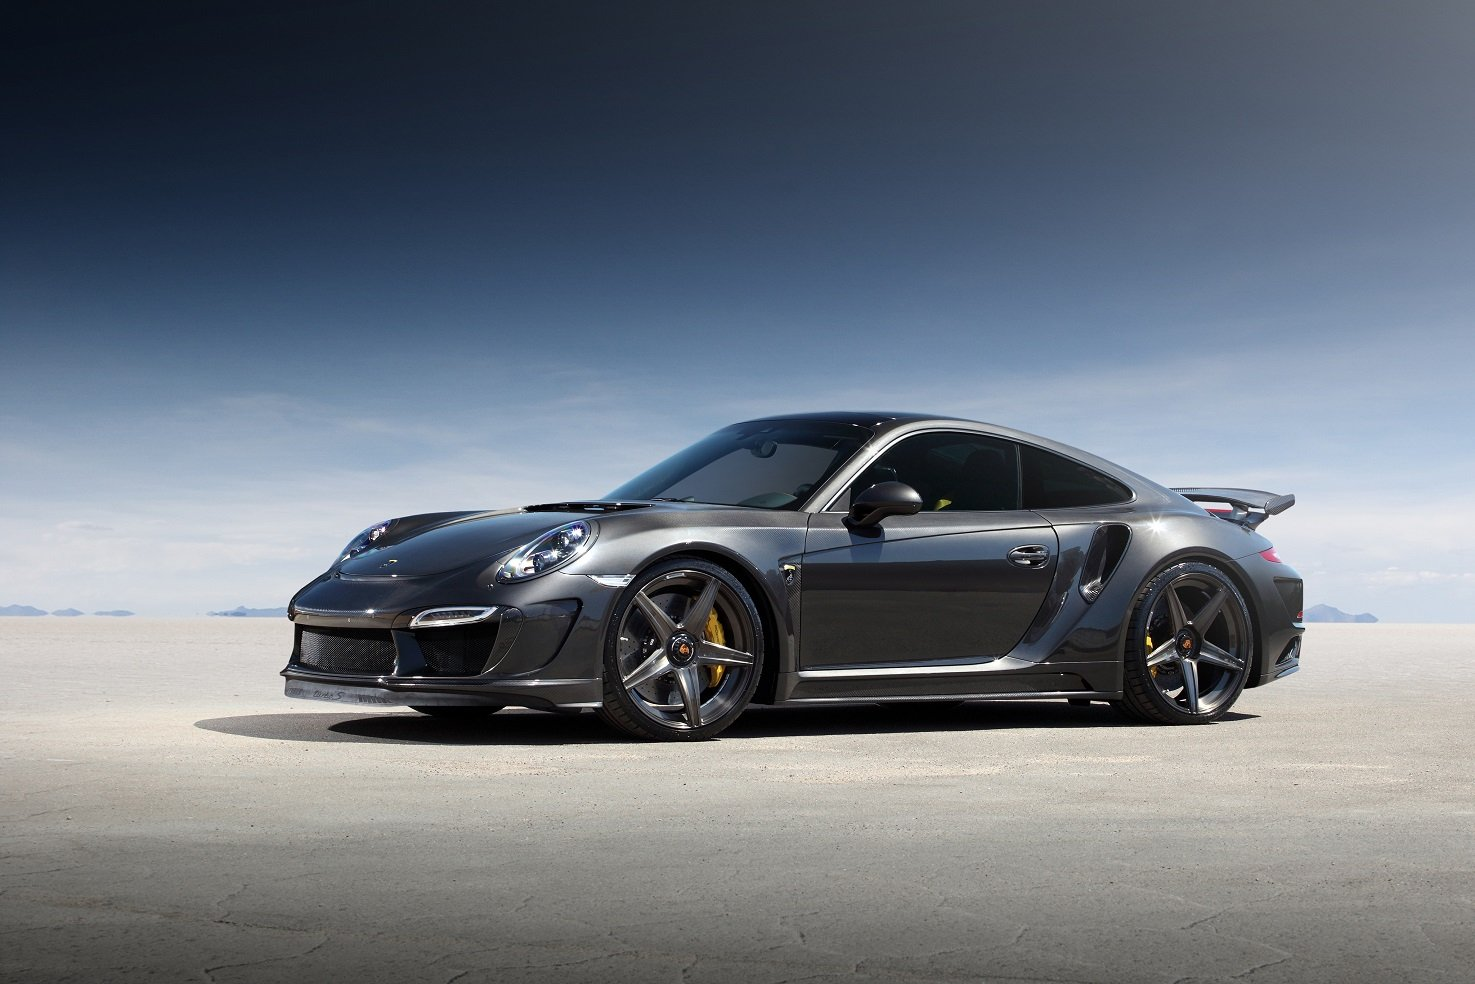 topcar porsche 911 turbo stinger gtr carbon edition cars modified 991 2015 wallpaper 1475x984 742065 wallpaperup